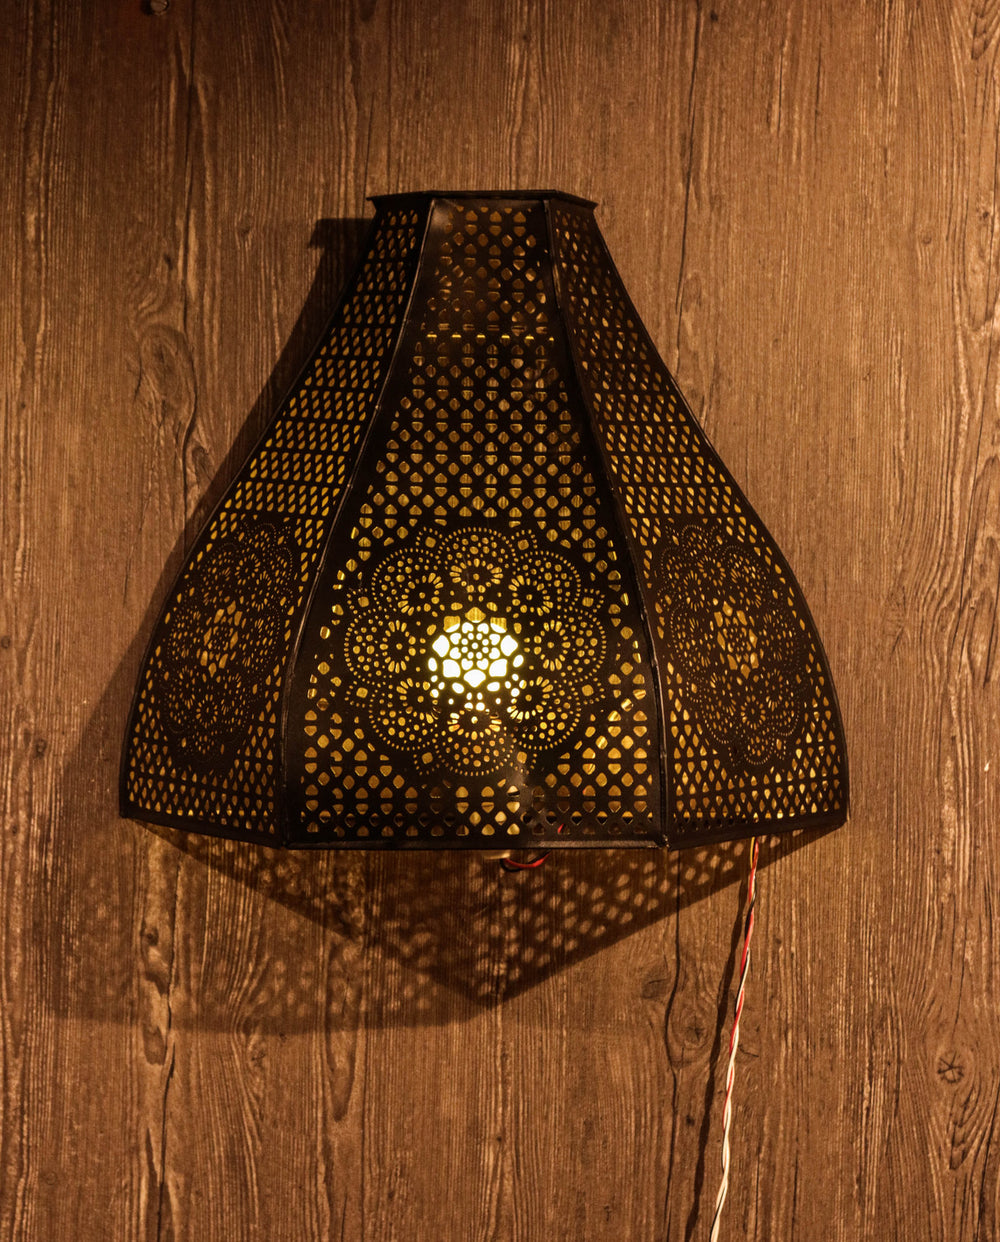 Jali work metal mesh night lamp.Goes perfectly with your Diwali decoration. L50